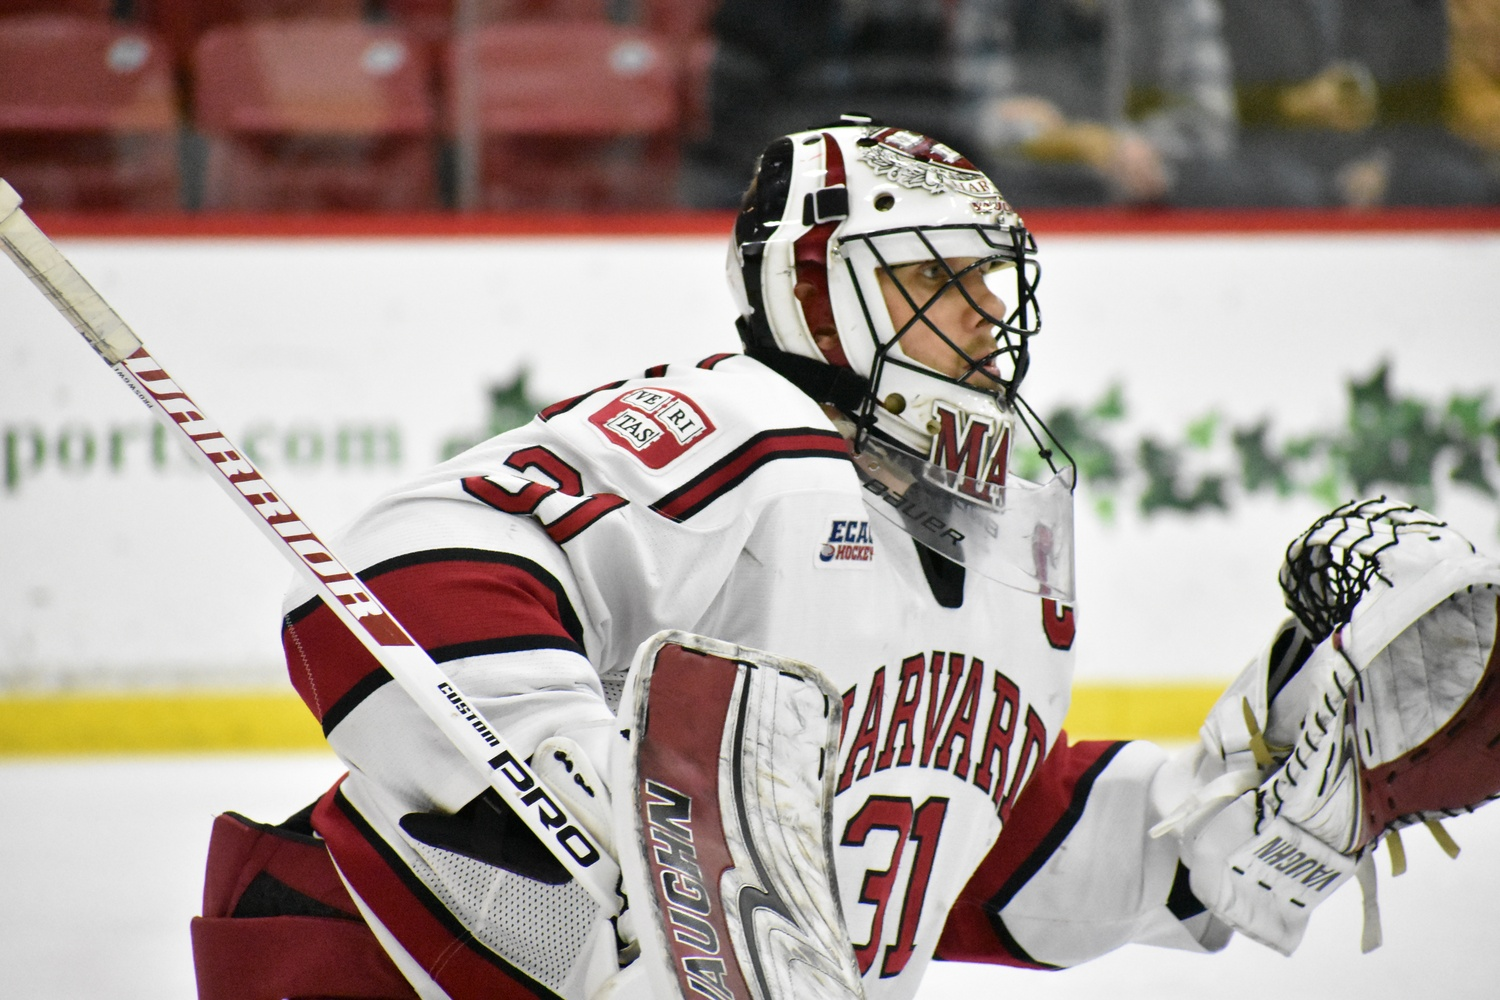 Tri-captain net-minder Merrick Madsen looked himself again in Game 2, finishing the game with a .955 save percentage that more closely resembles his stellar regular season play against Dartmouth.